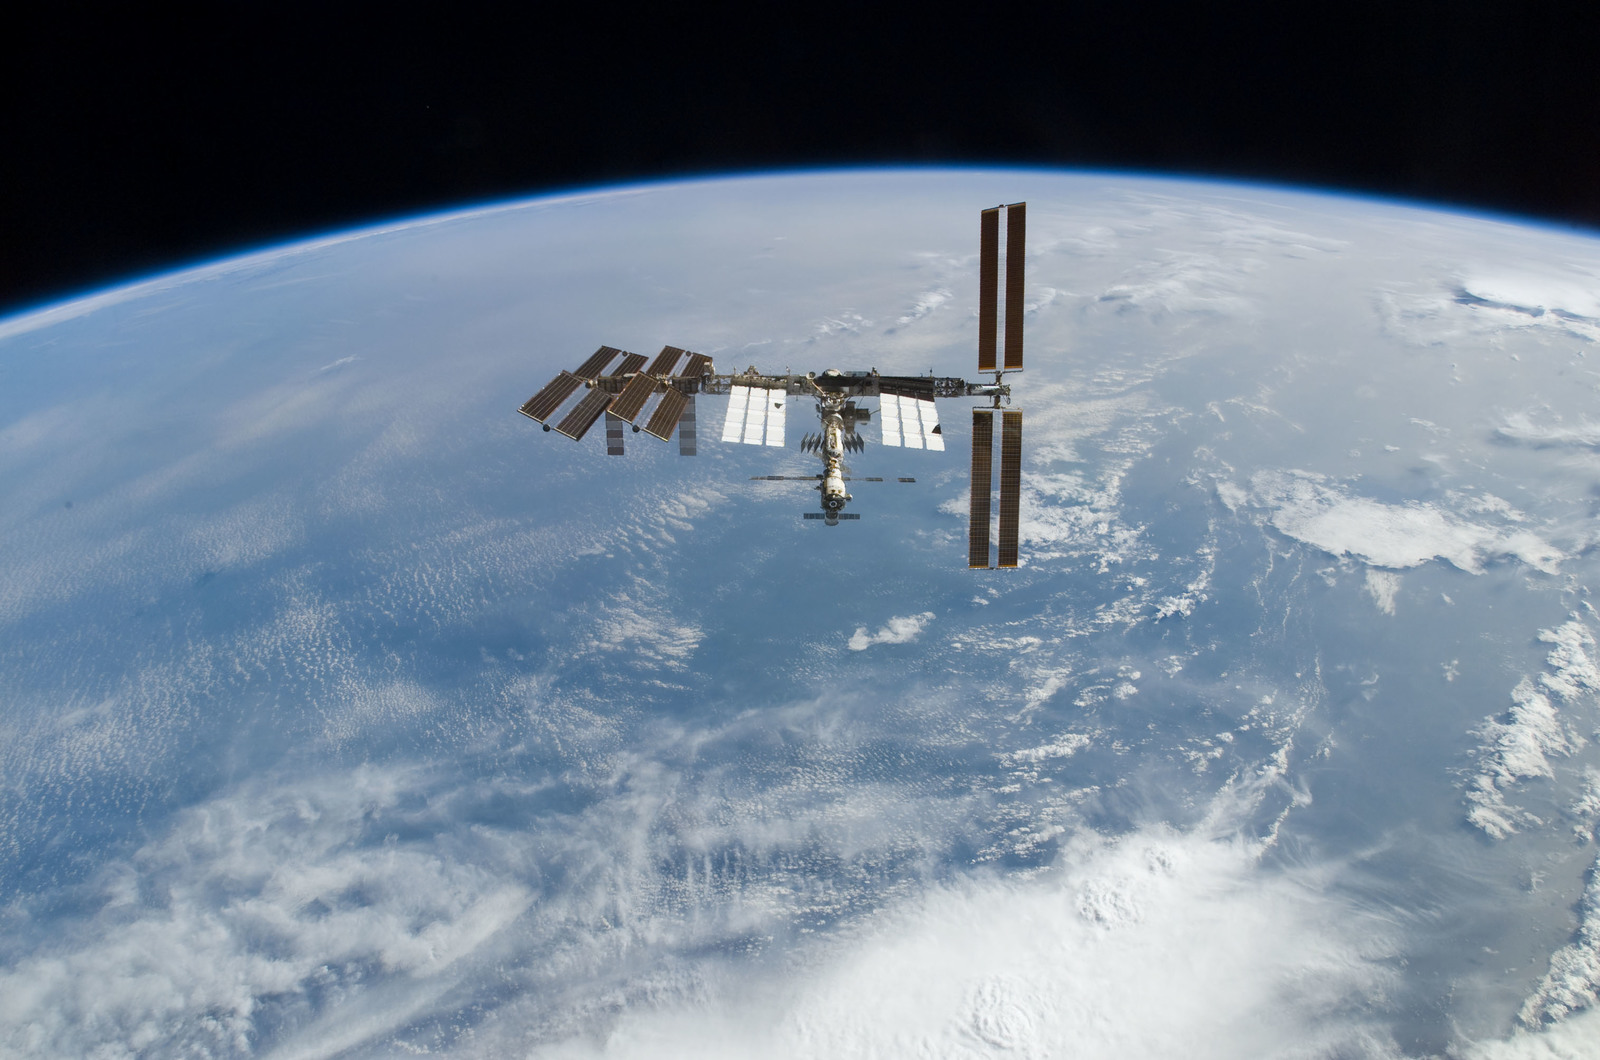 S122E010948 - STS-122 - View of ISS after STS-122 Undocking